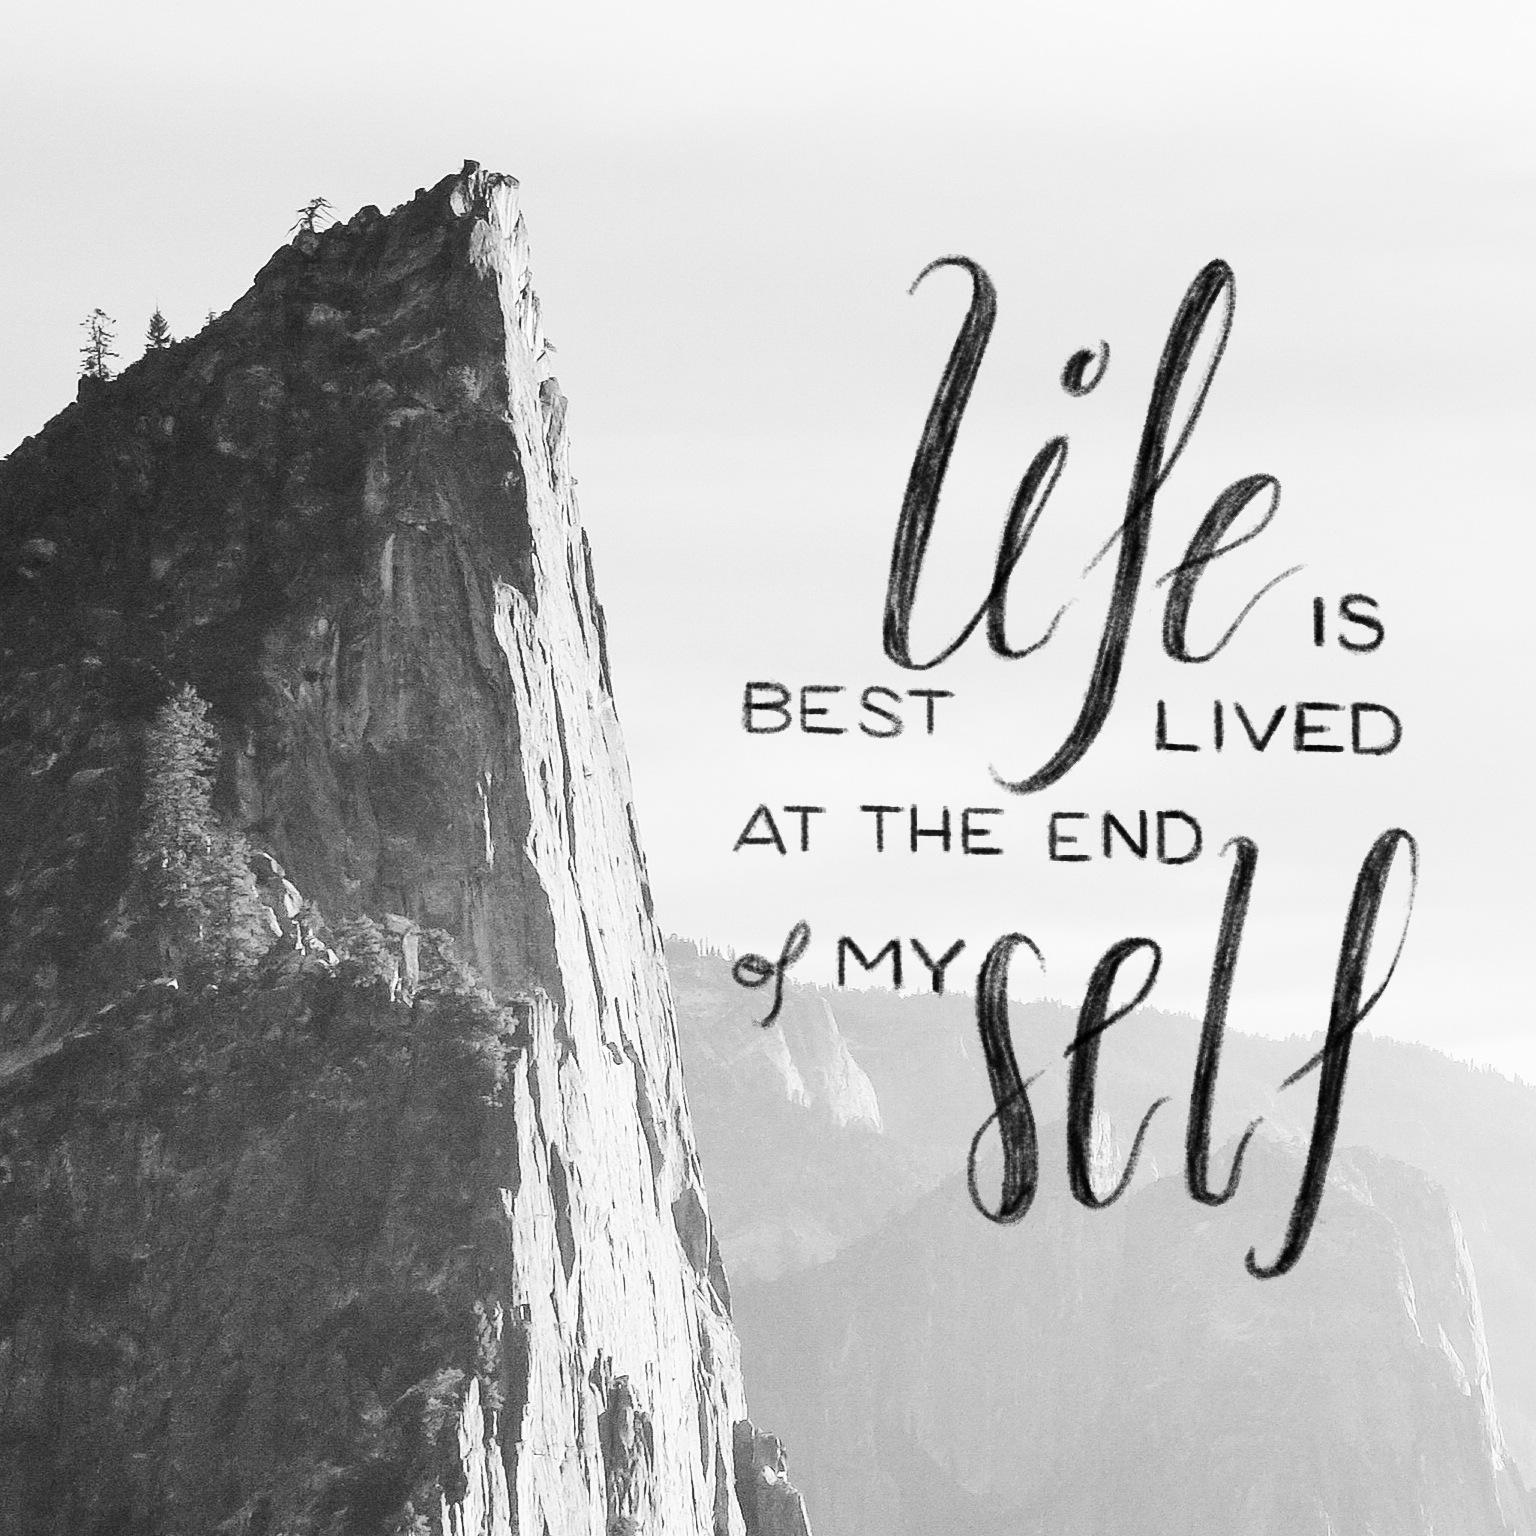 life is best lived